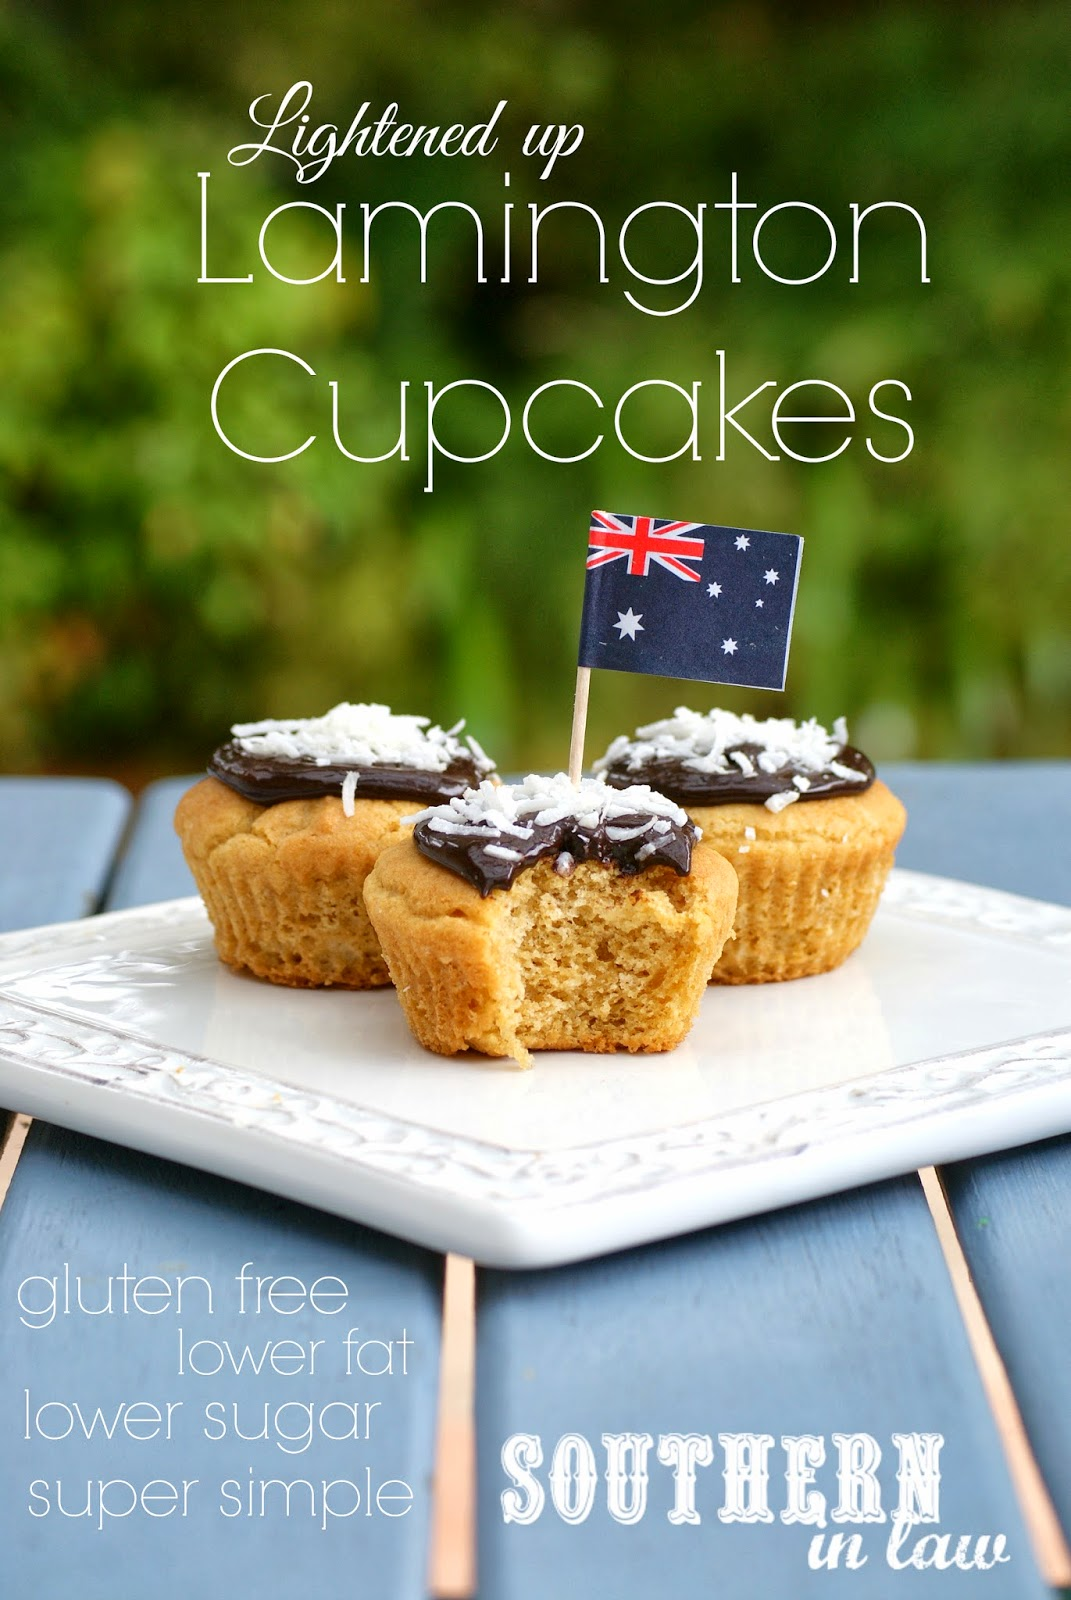 Low Fat Lamington Cupcakes - Healthier Butter Cake Recipe - Gluten Free, Low Sugar